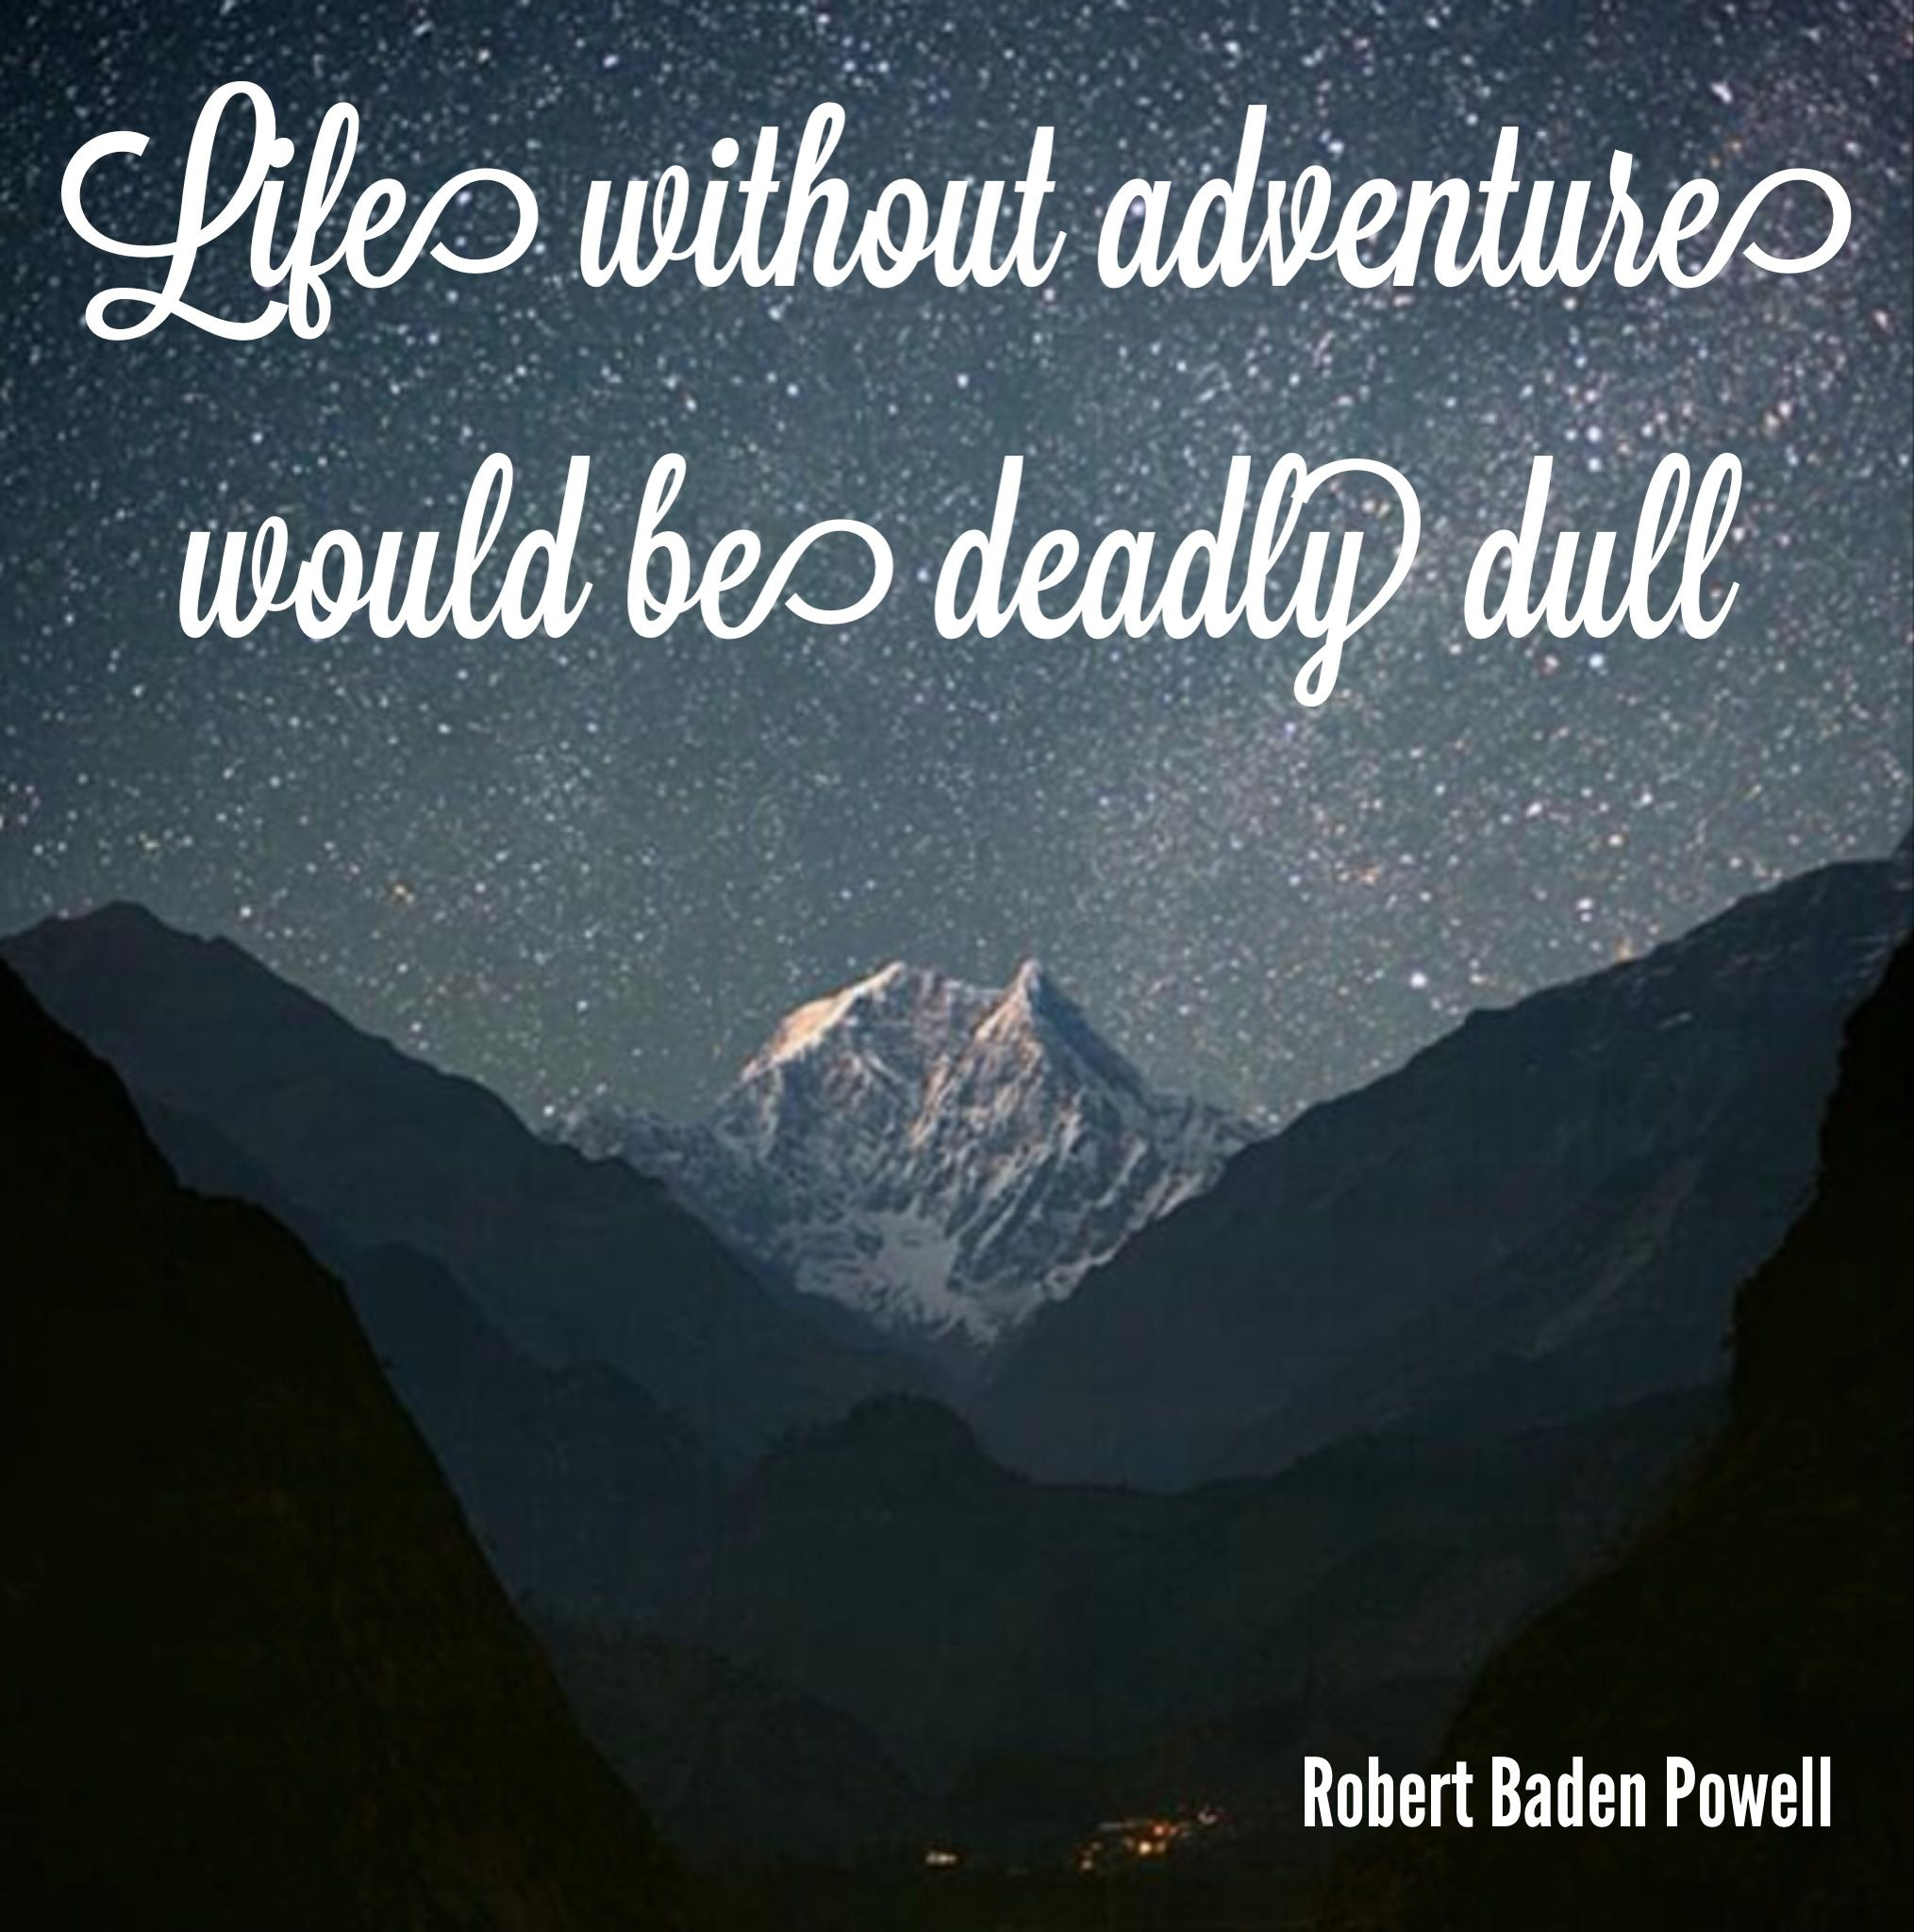 Life Without Adventure Would Be Deadly Dull